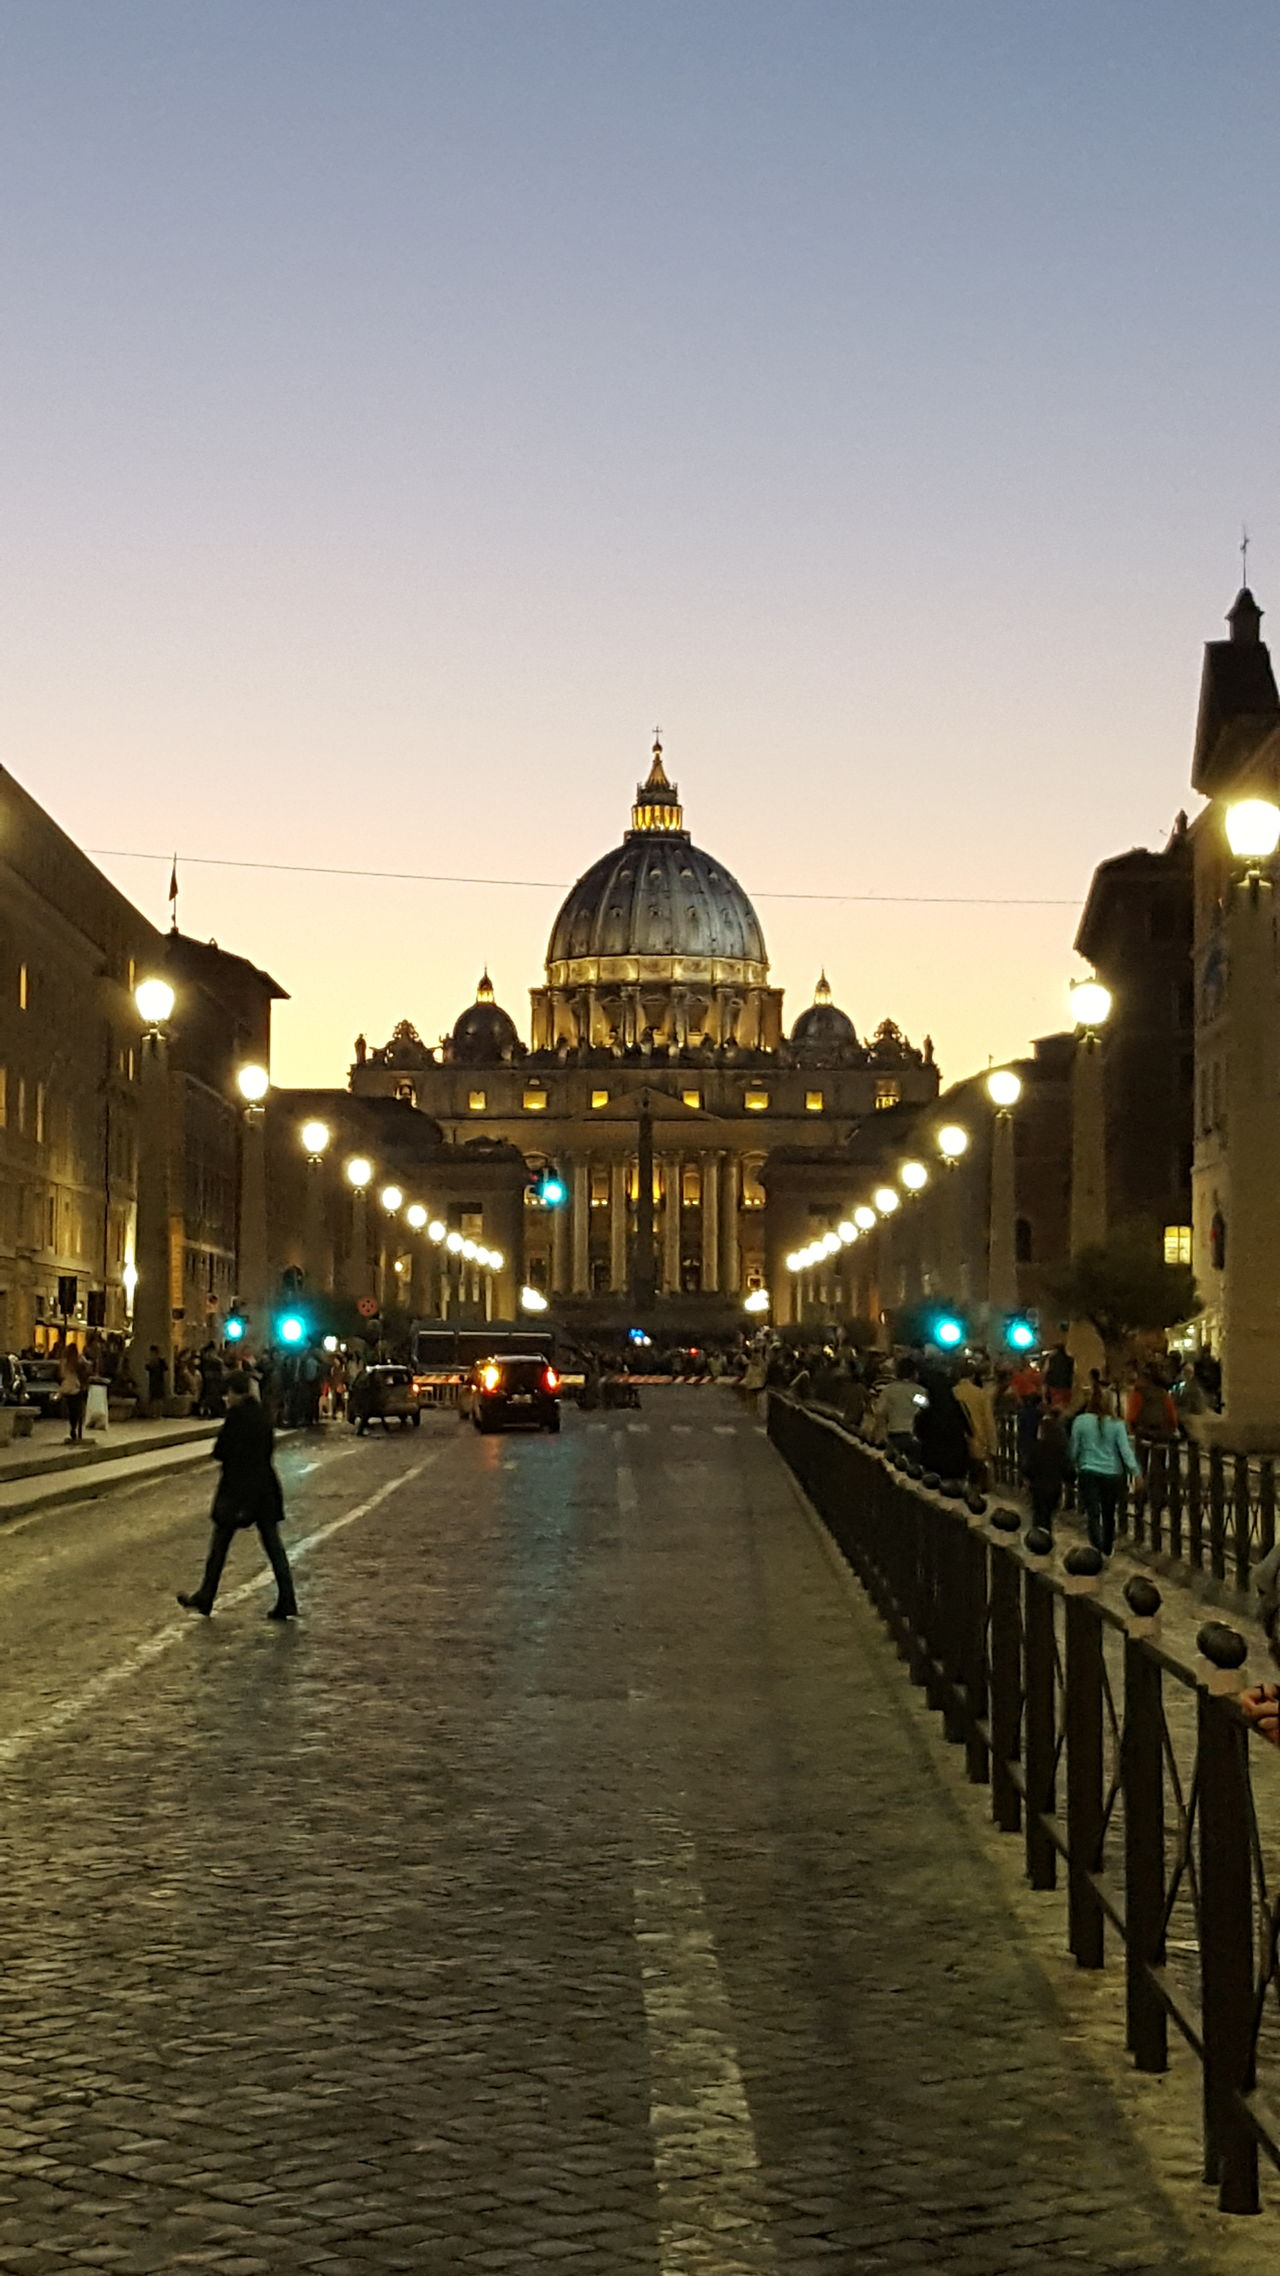 Pope Cityscape Dome Outdoors Architecture Rome, Italy Rome By Night Travel Destinations Illuminated Vaticano City City Travel Architecture Sunset